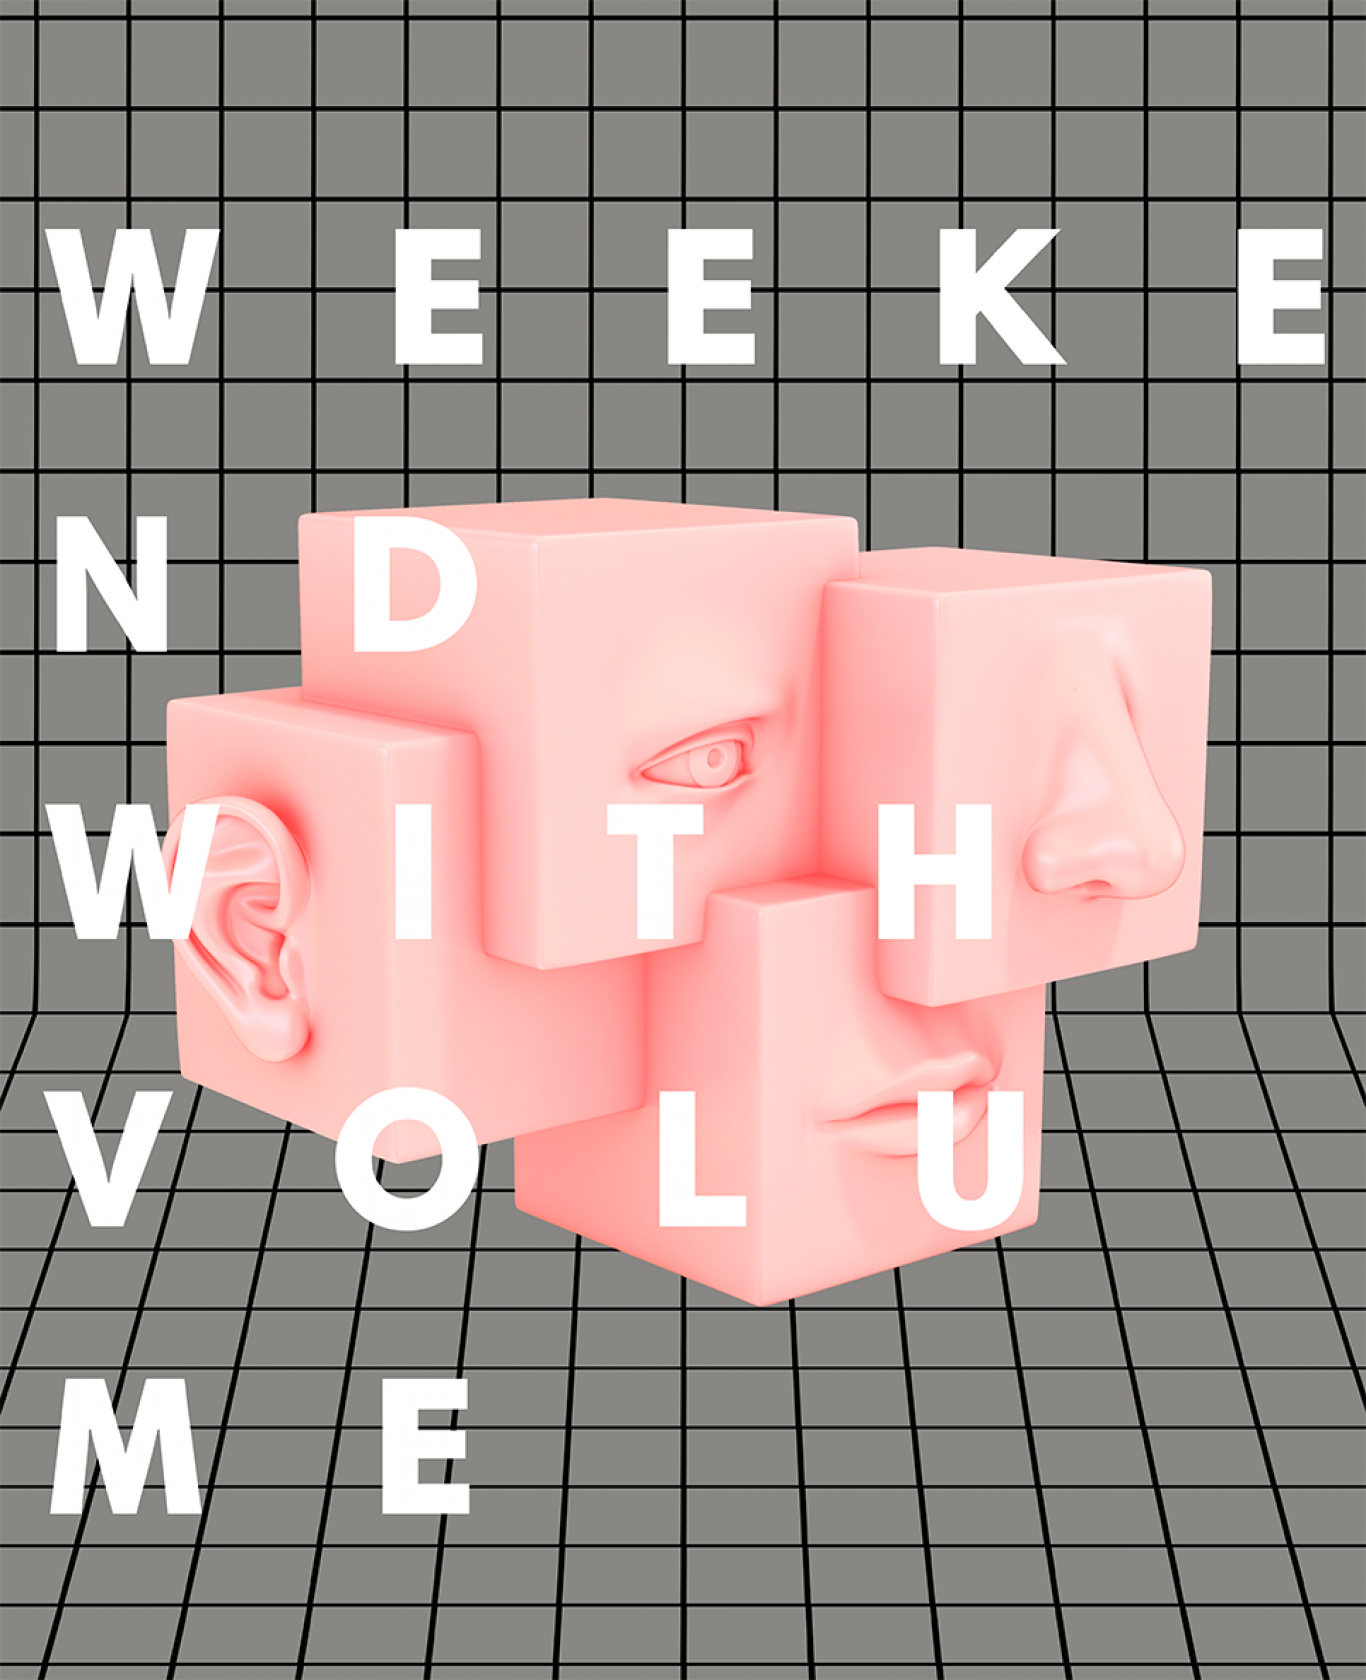 WEEKEND WITH VOLUME